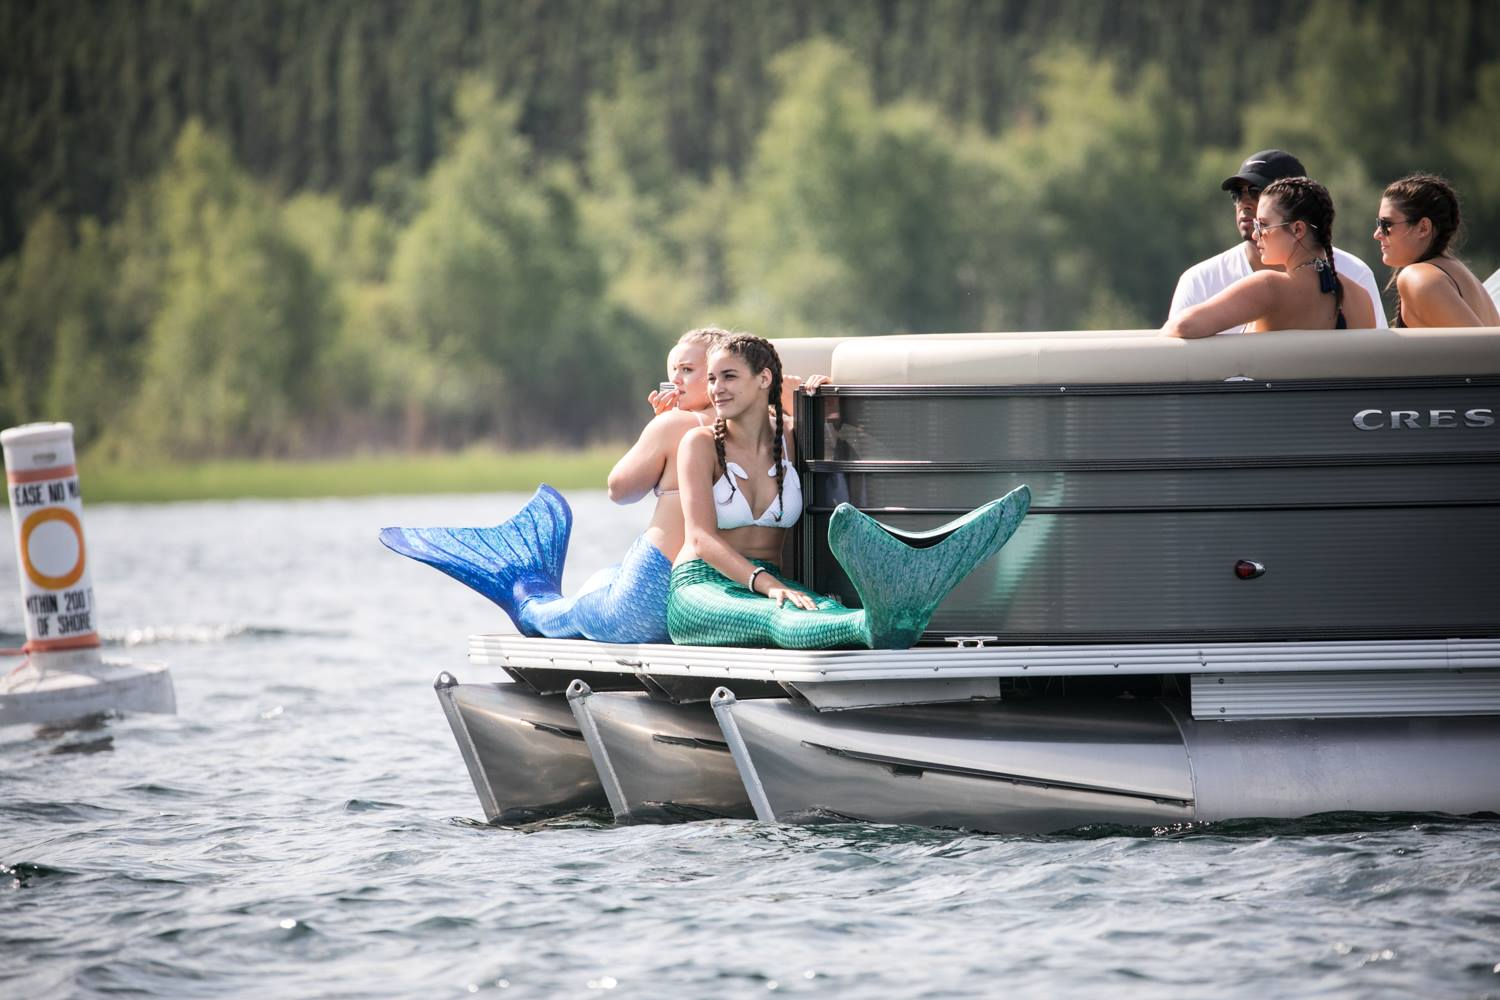 mermaids of harding lake.jpg